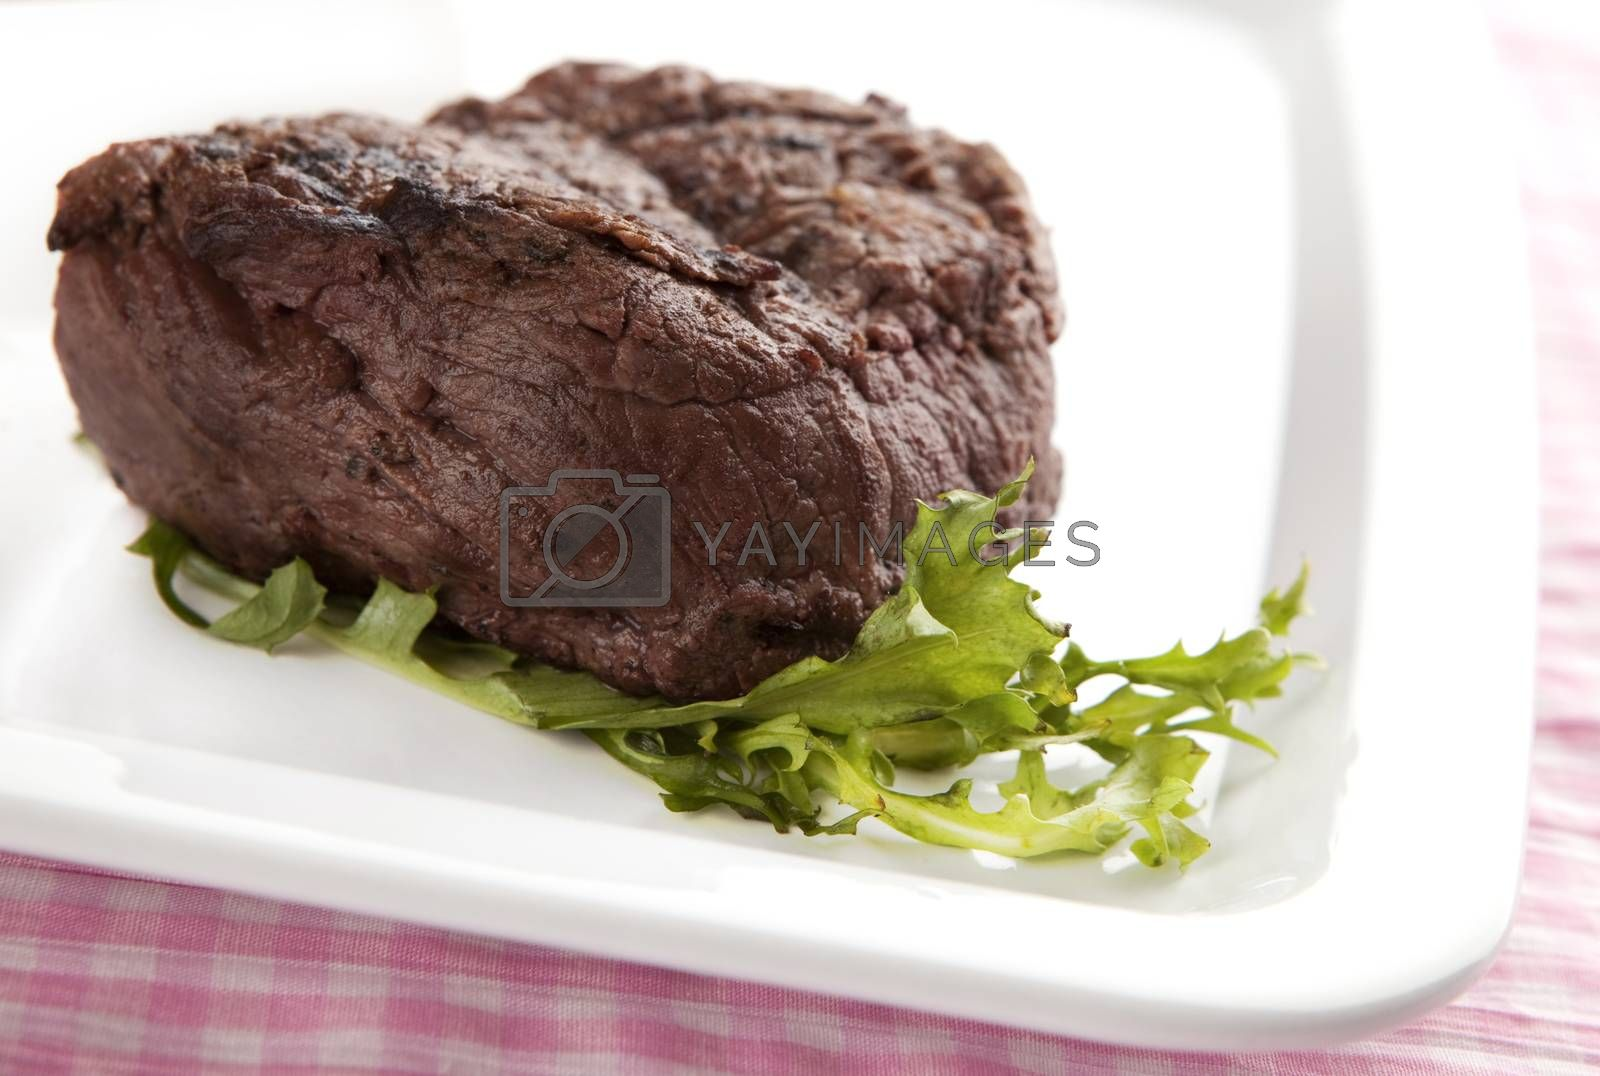 big steak on a plate with salad